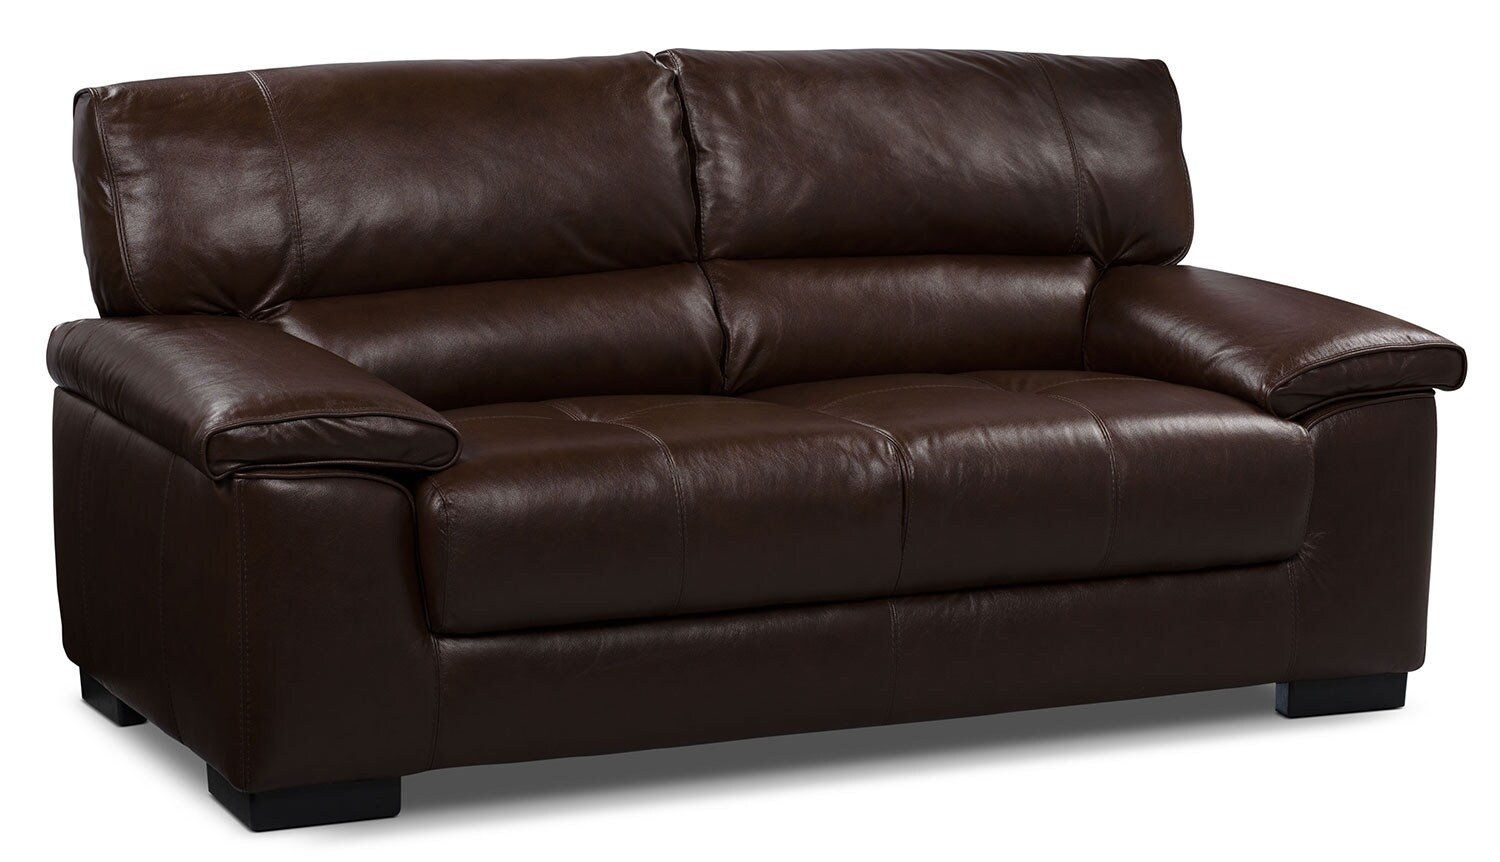 Living Room Furniture - Chateau d'Ax 100% Genuine Leather Loveseat - Dark Brown